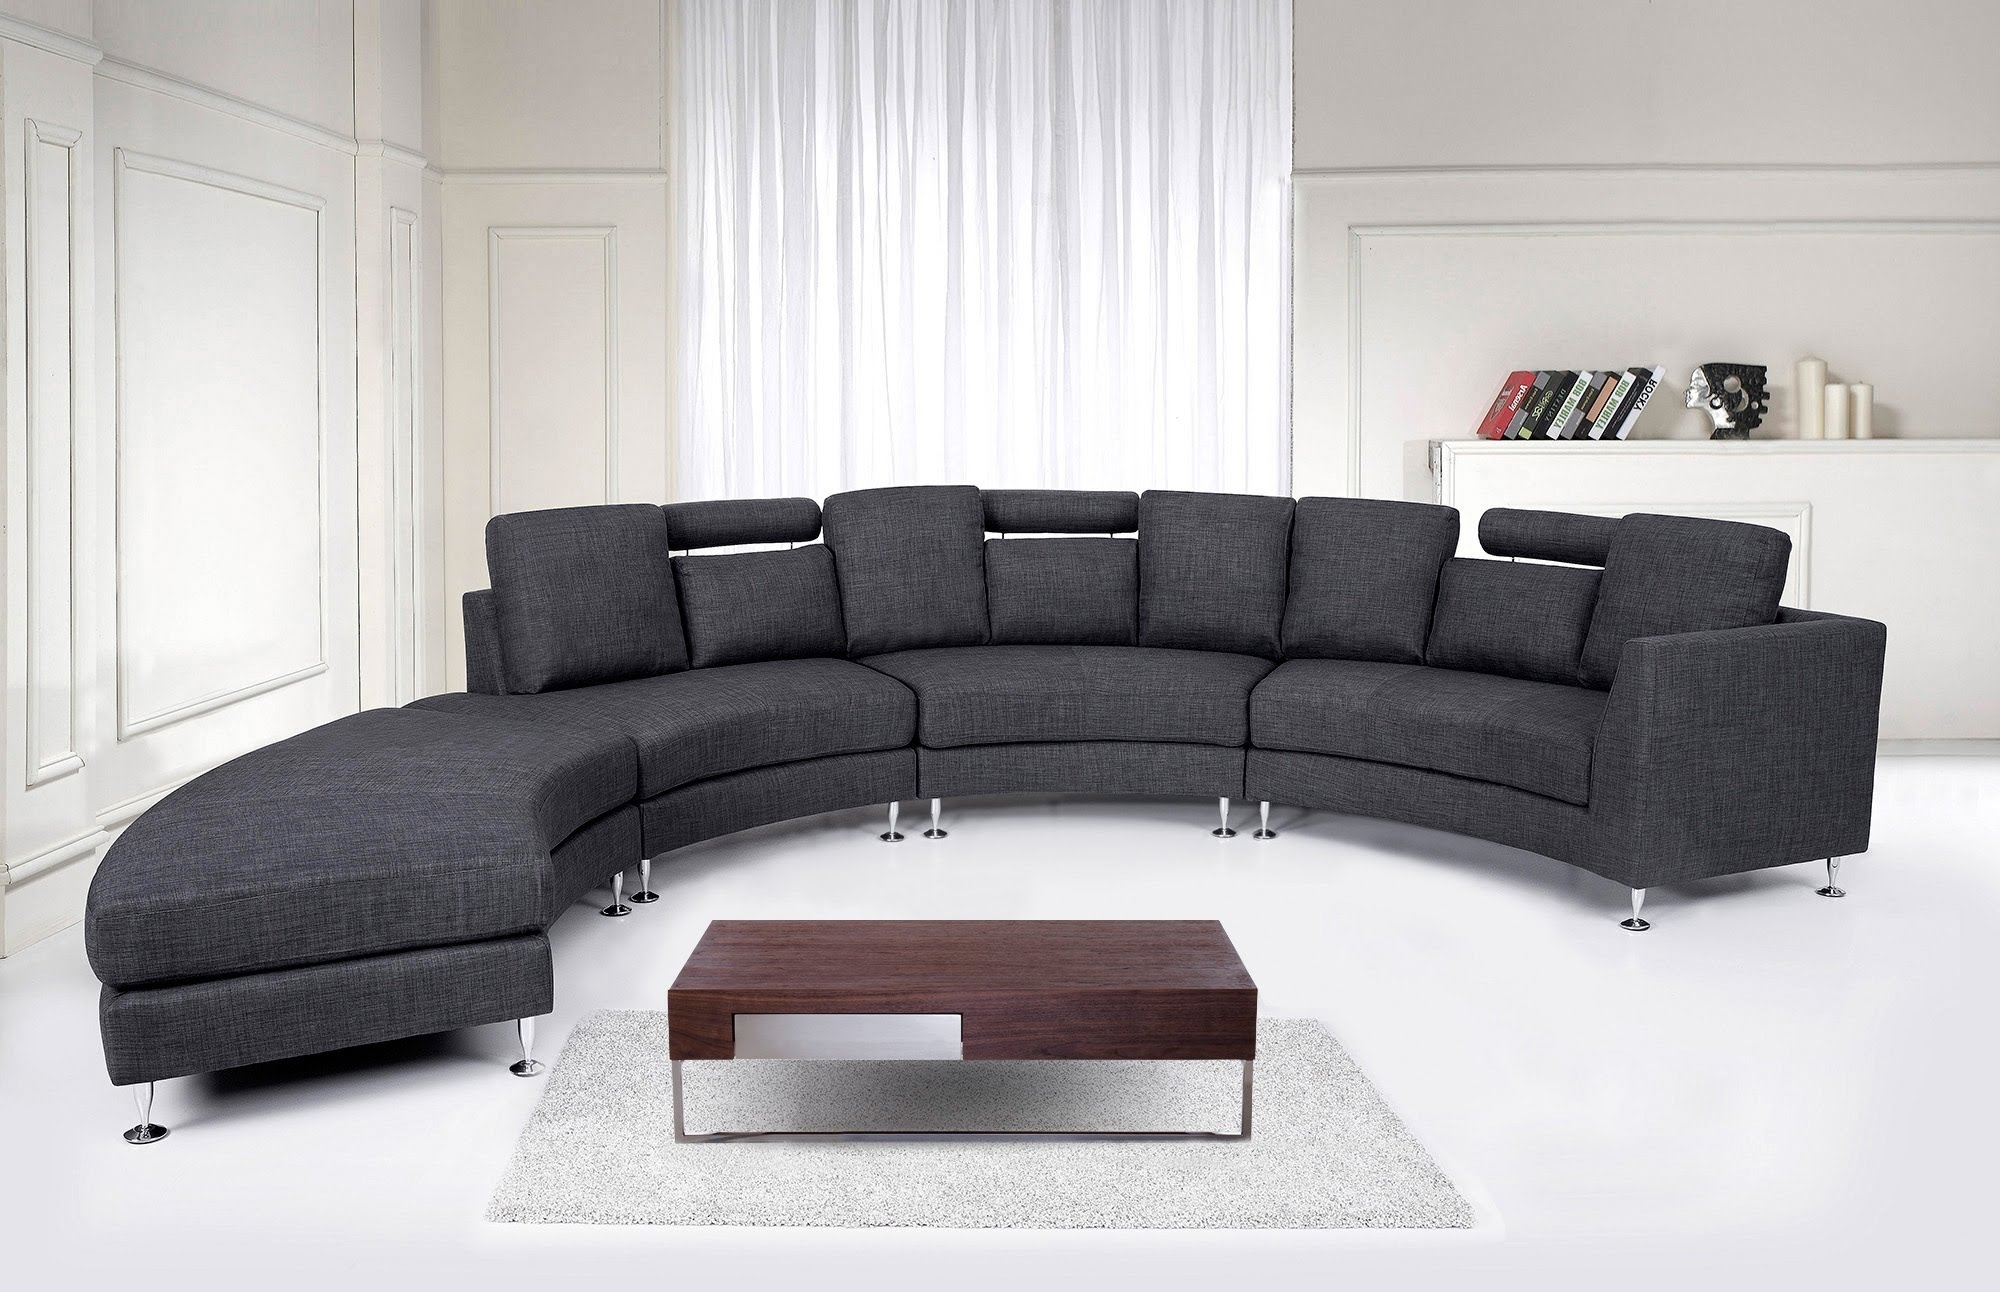 Latest Round Sofas Within Round Sofa (View 8 of 15)